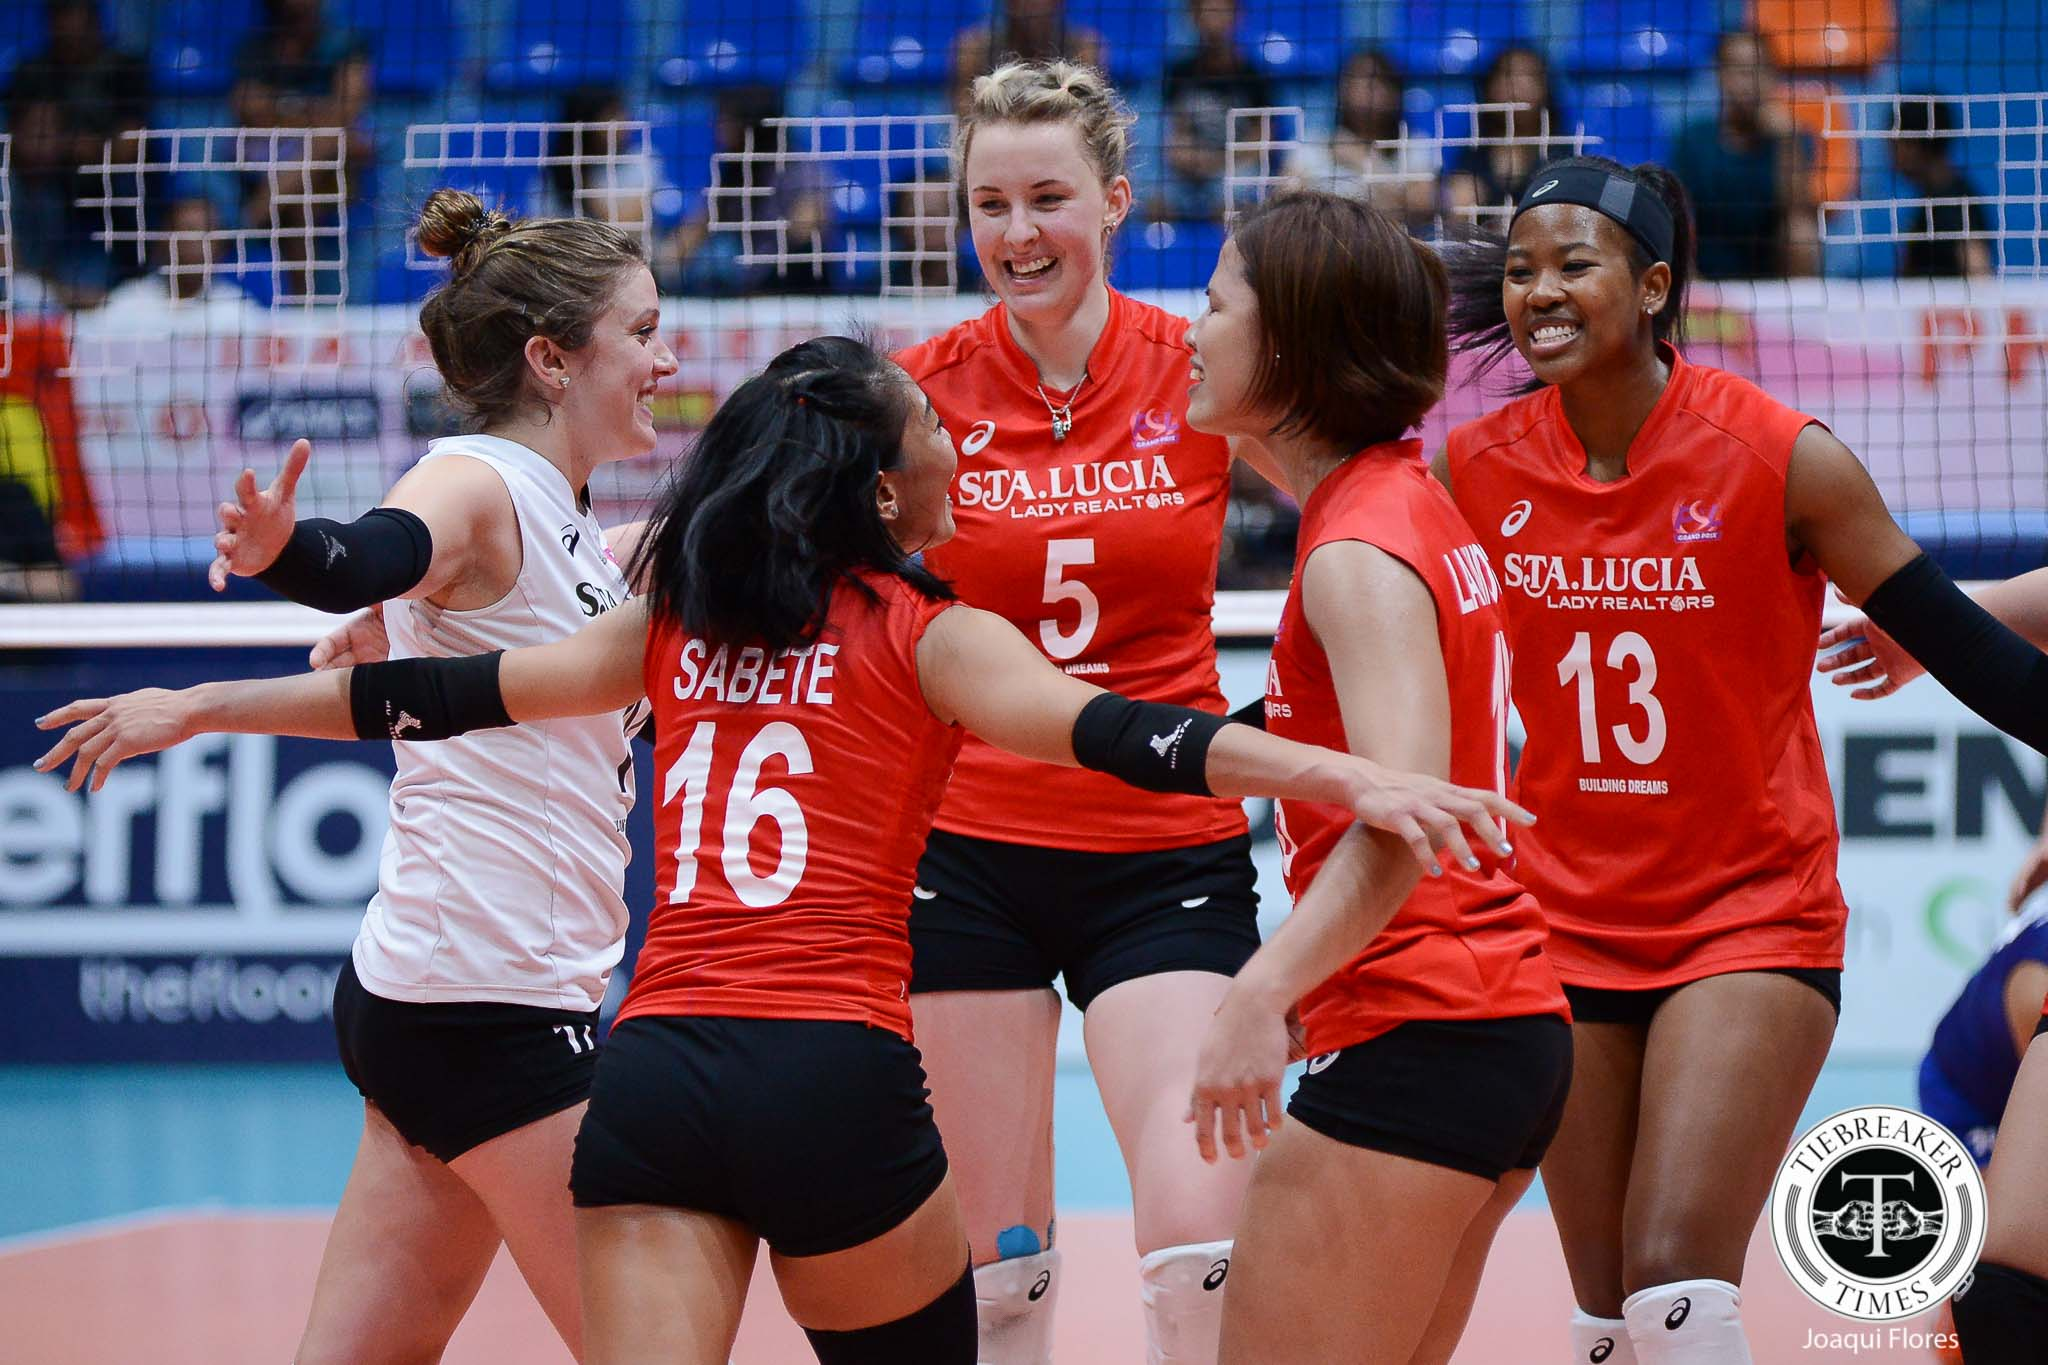 Philippine Sports News - Tiebreaker Times Sta. Lucia ends elims on high note at Generika-Ayala's expense News PSL Volleyball  Sta. Lucia Lady Realtors Marisa Field Kristen Moncks Katarina Pilepic Jerry Yee Generika Lifesavers Francis Vicente Djanel Cheng Darlene Ramdin Bohdana Anisova 2017 PSL Season 2017 PSL Grand Prix